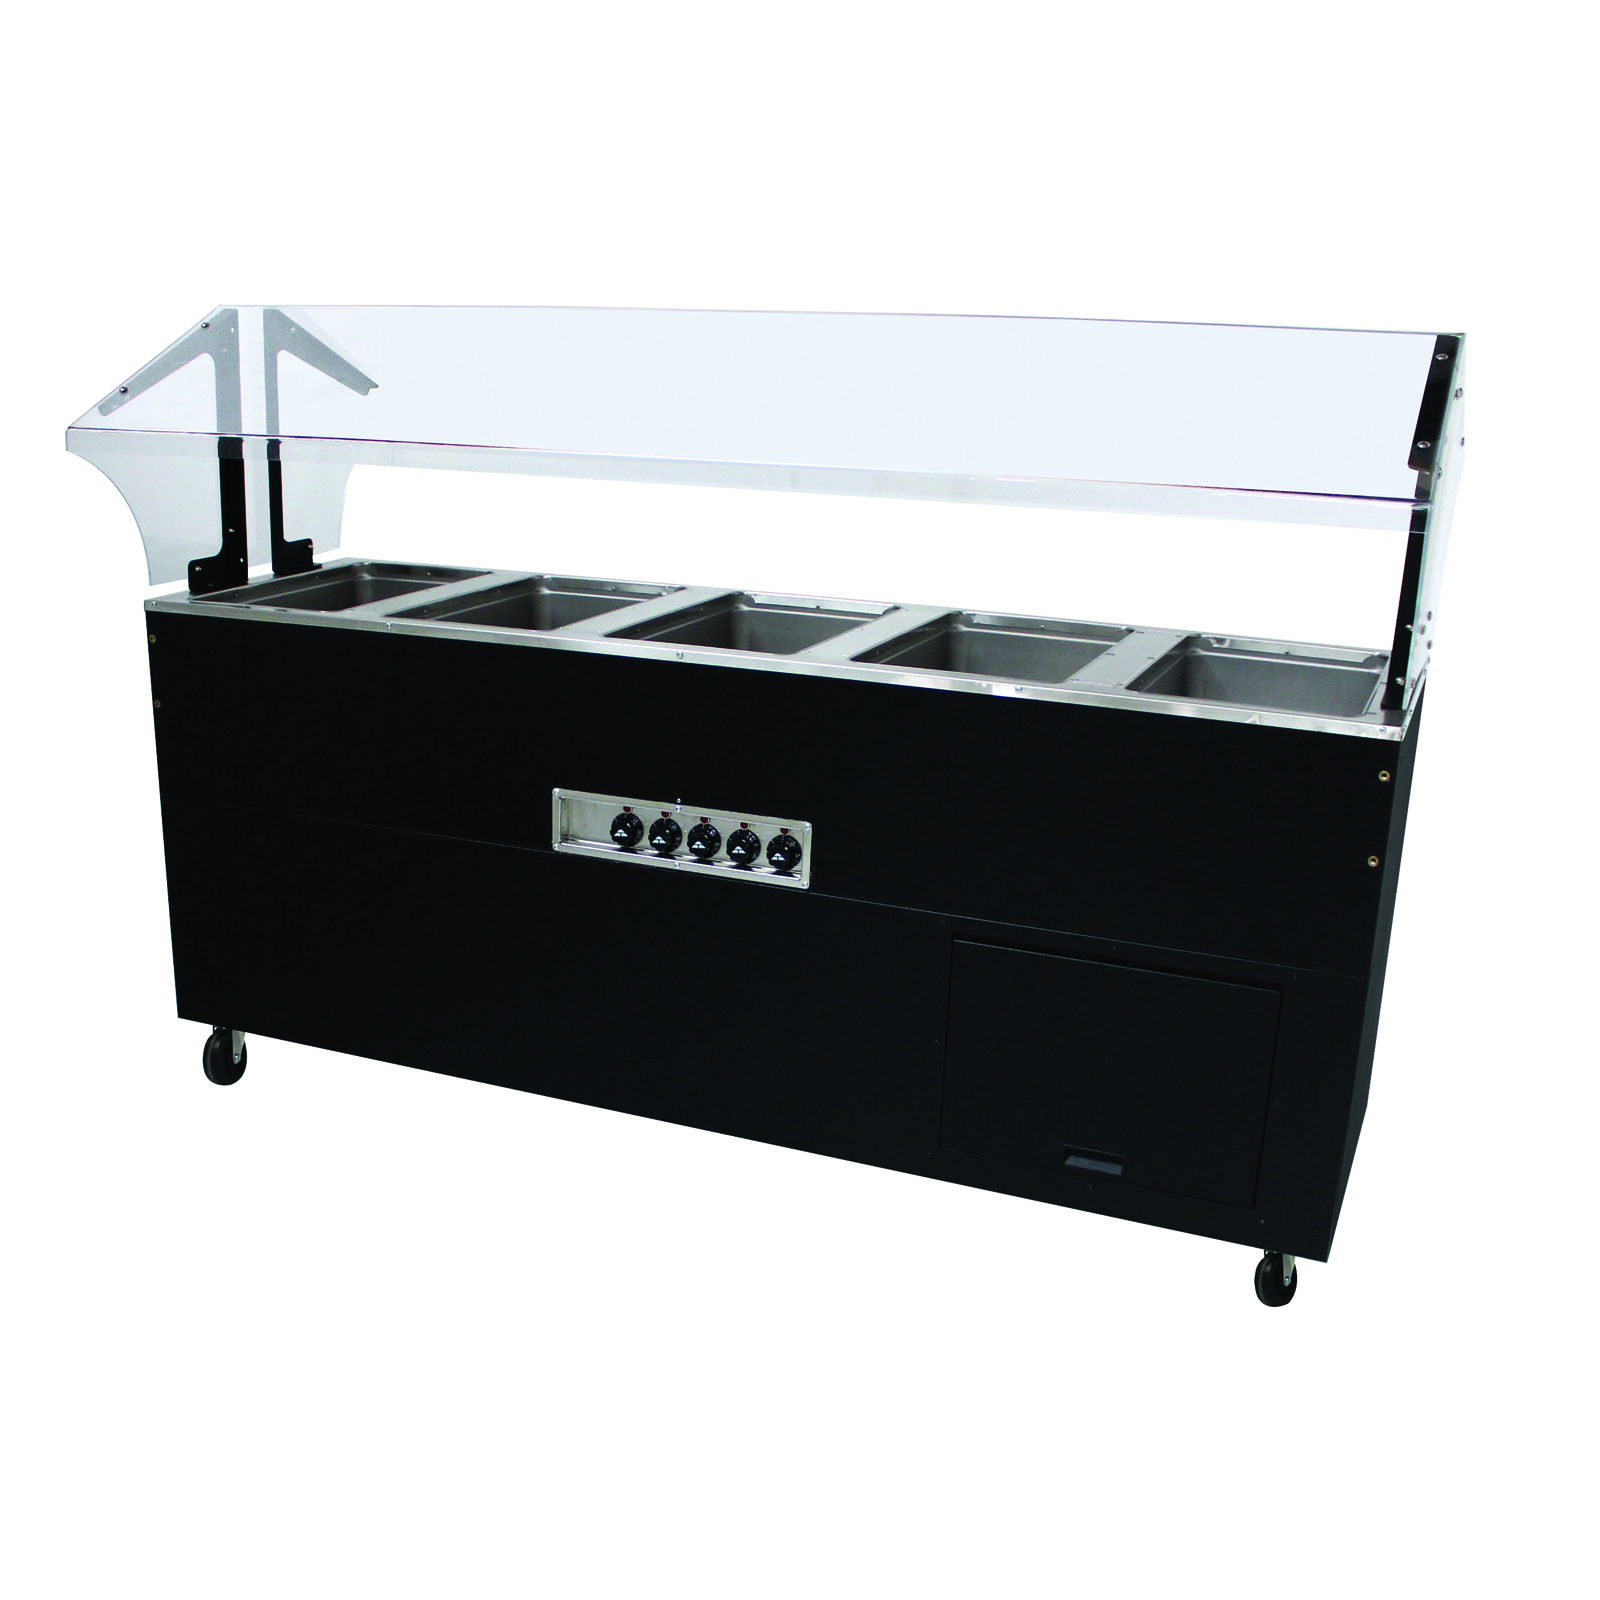 Advance Tabco BSW5-240-B-SB serving counter, hot food, electric